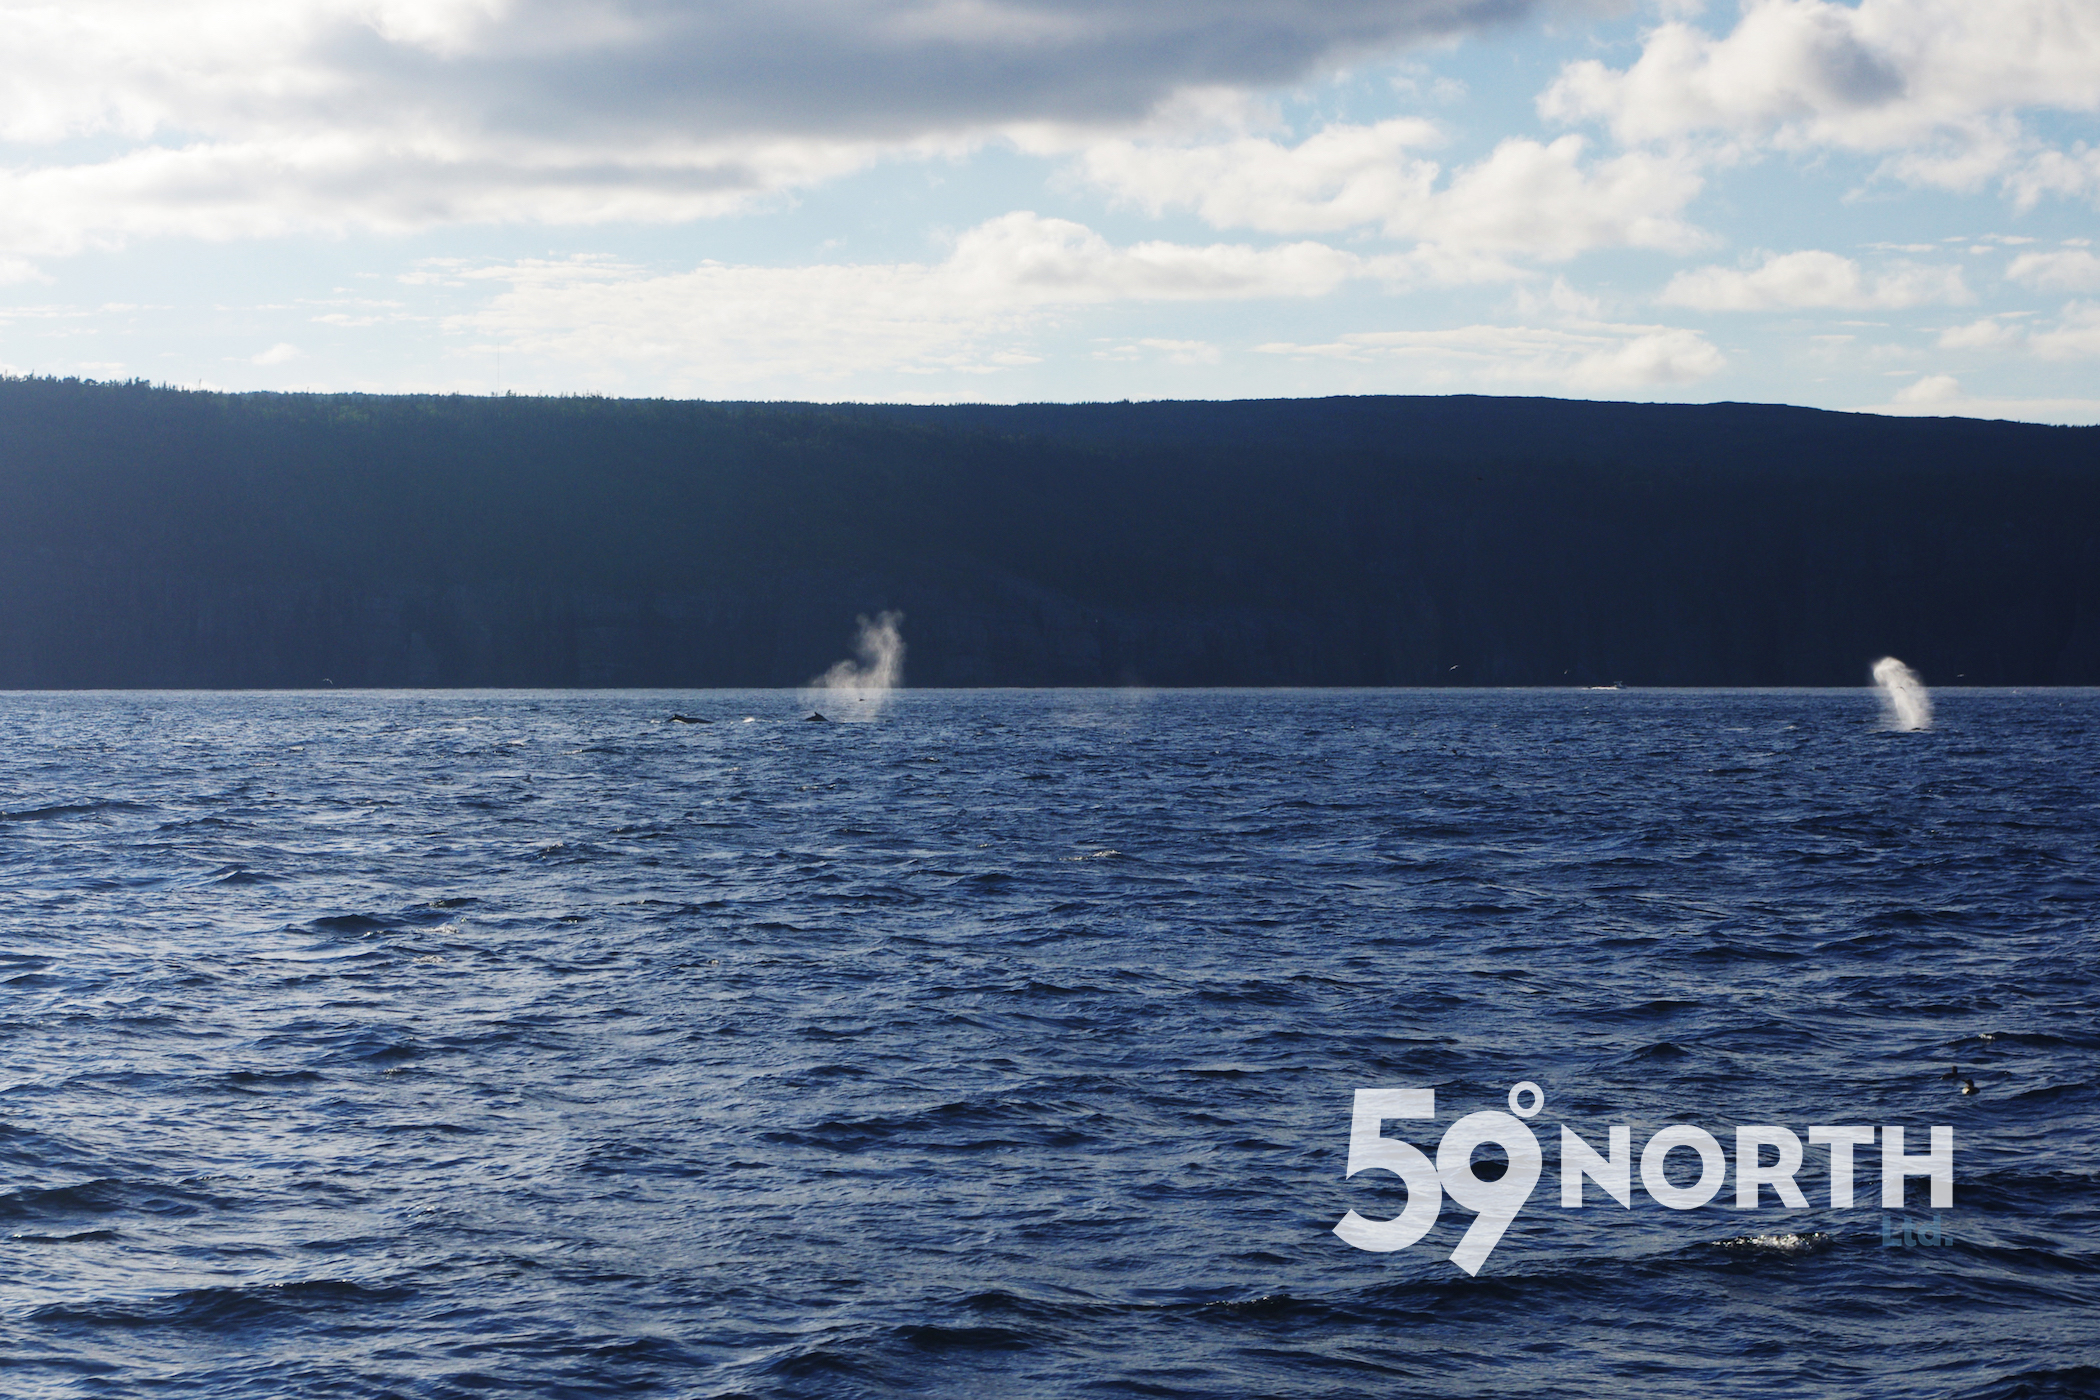 Lots of whales around the boat as we sailed up the coast on the way up to St. John's, Newfoundland. One of the many highlights of 2016! July 2016